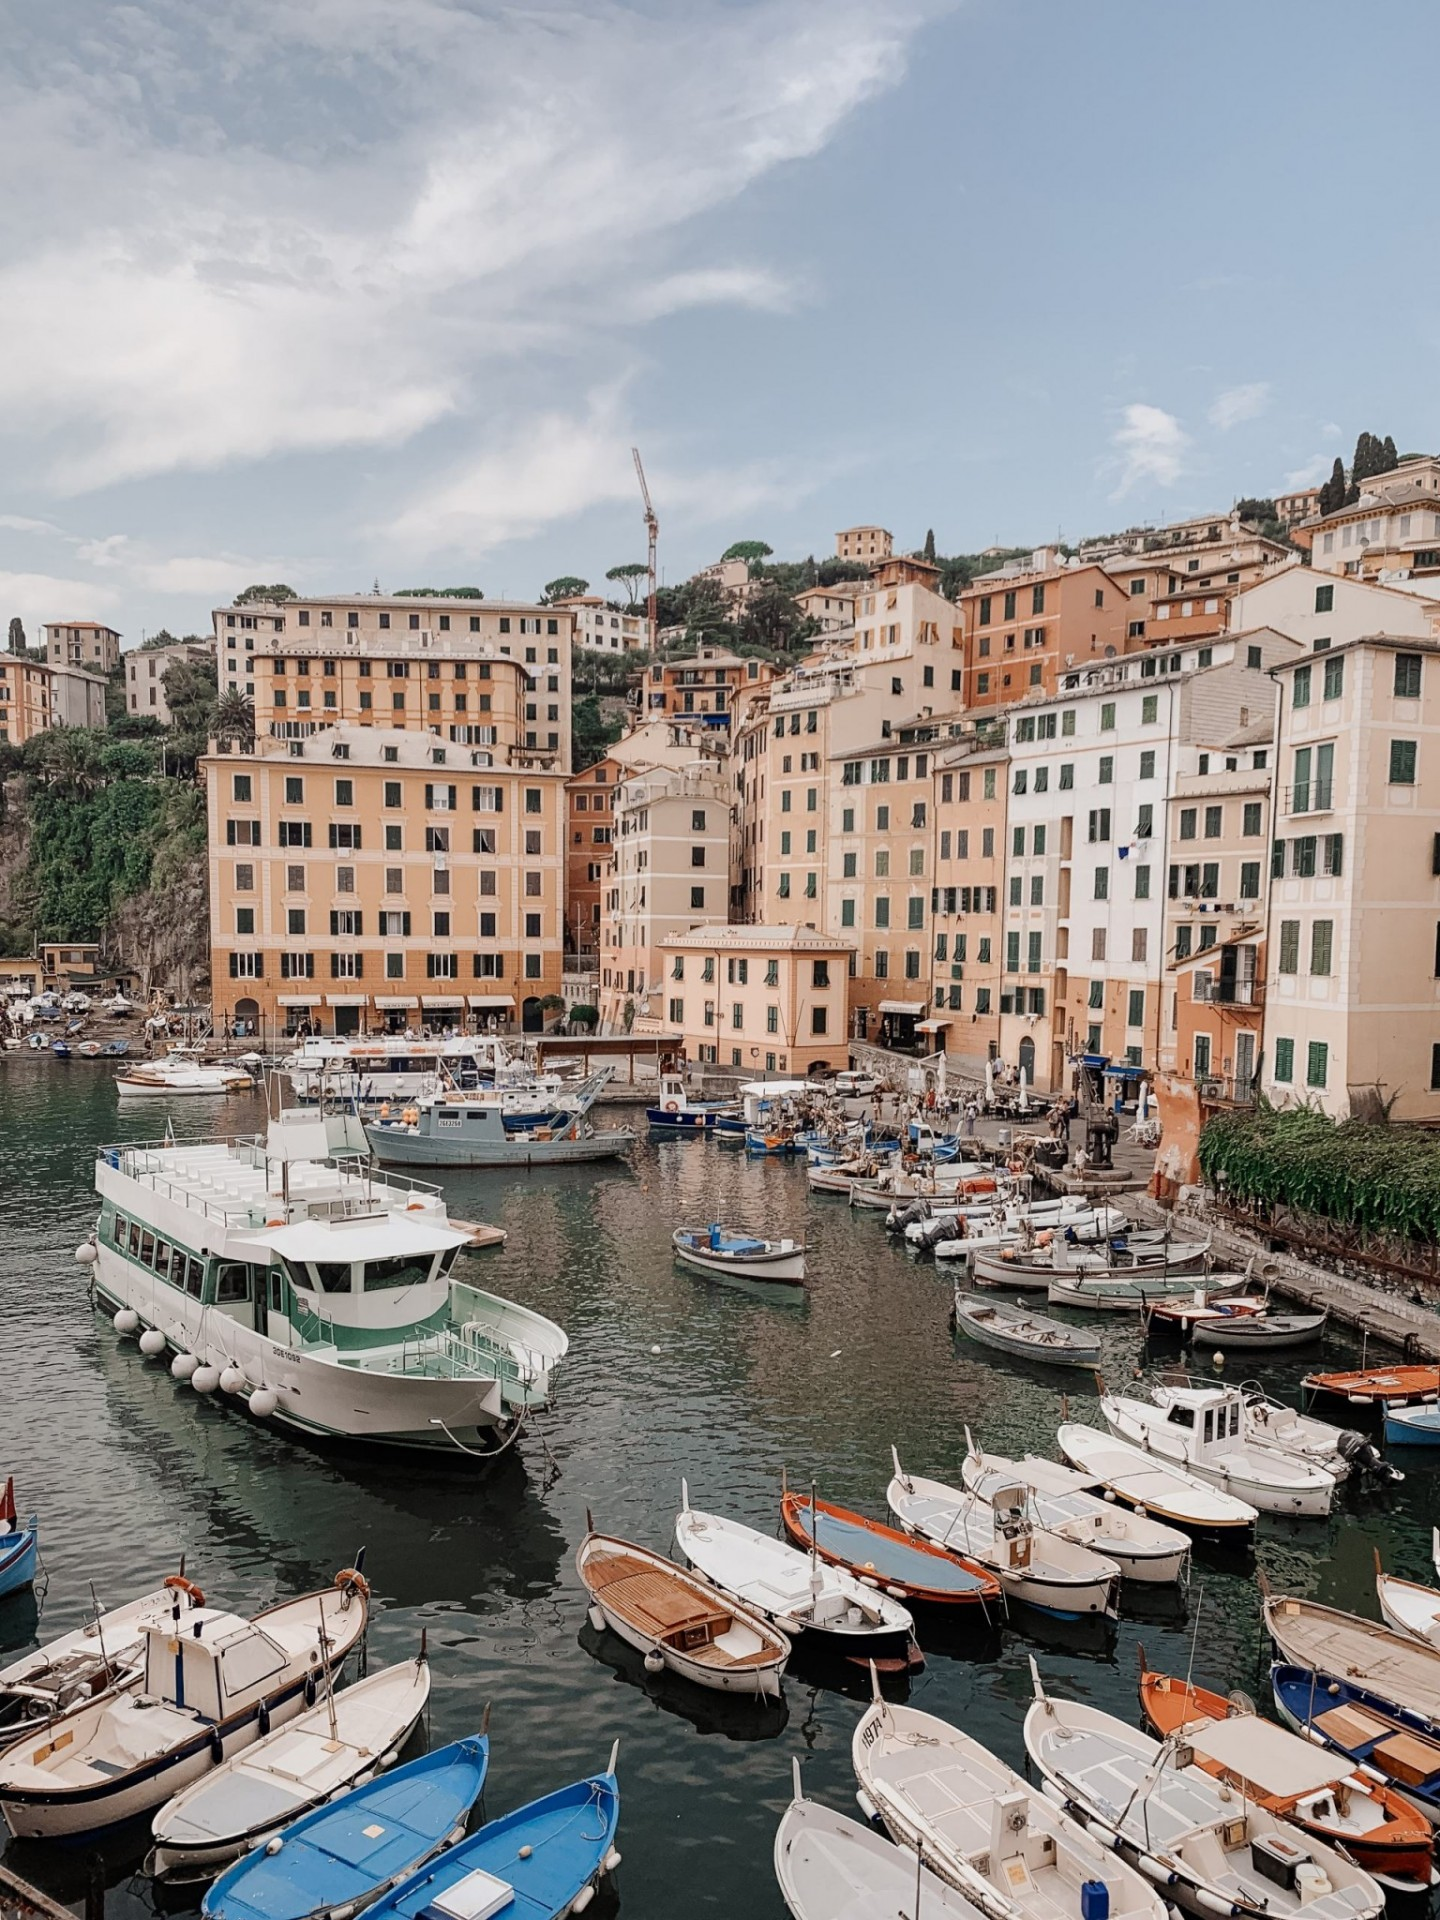 Lifestyle blogger Mollie Moore shares a Portofino Travel Guide | Travel Guide: Best Things to do in Portofino Italy by popular international travel blogger, Mollie Moore: image of Portofino Italy.